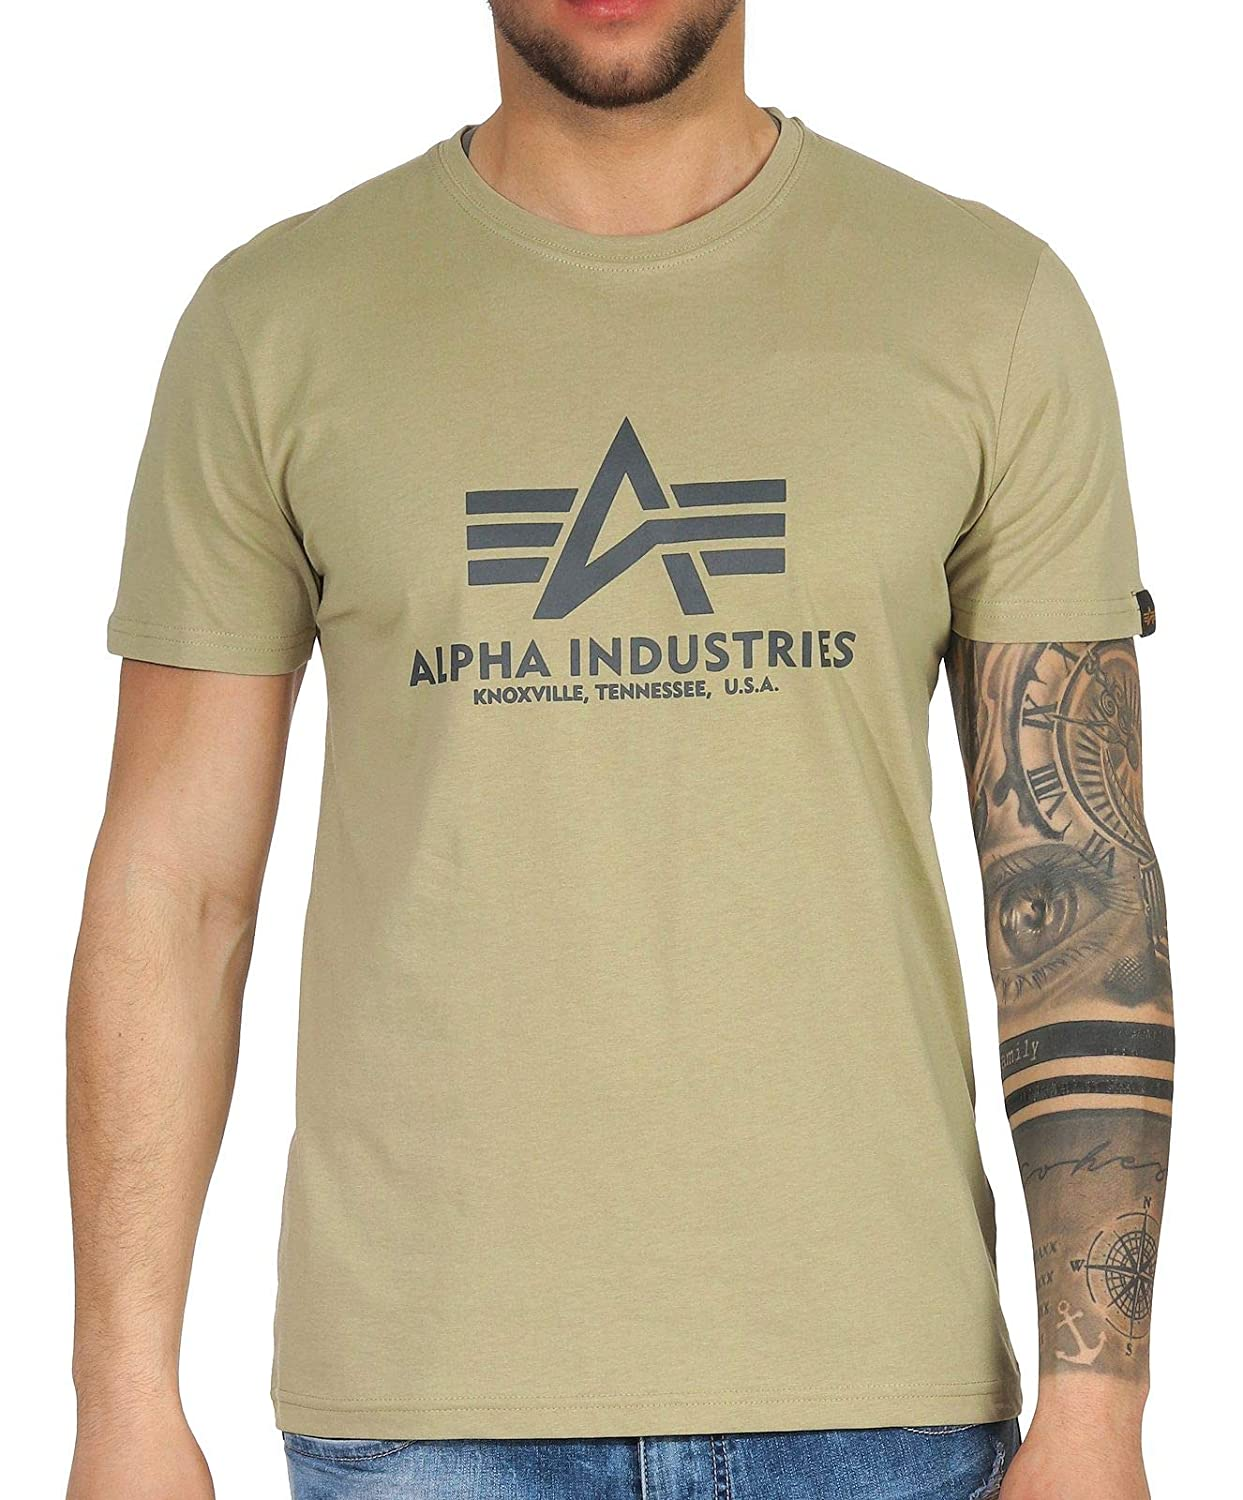 Alpha Industries Basic Camiseta: Amazon.es: Ropa y accesorios